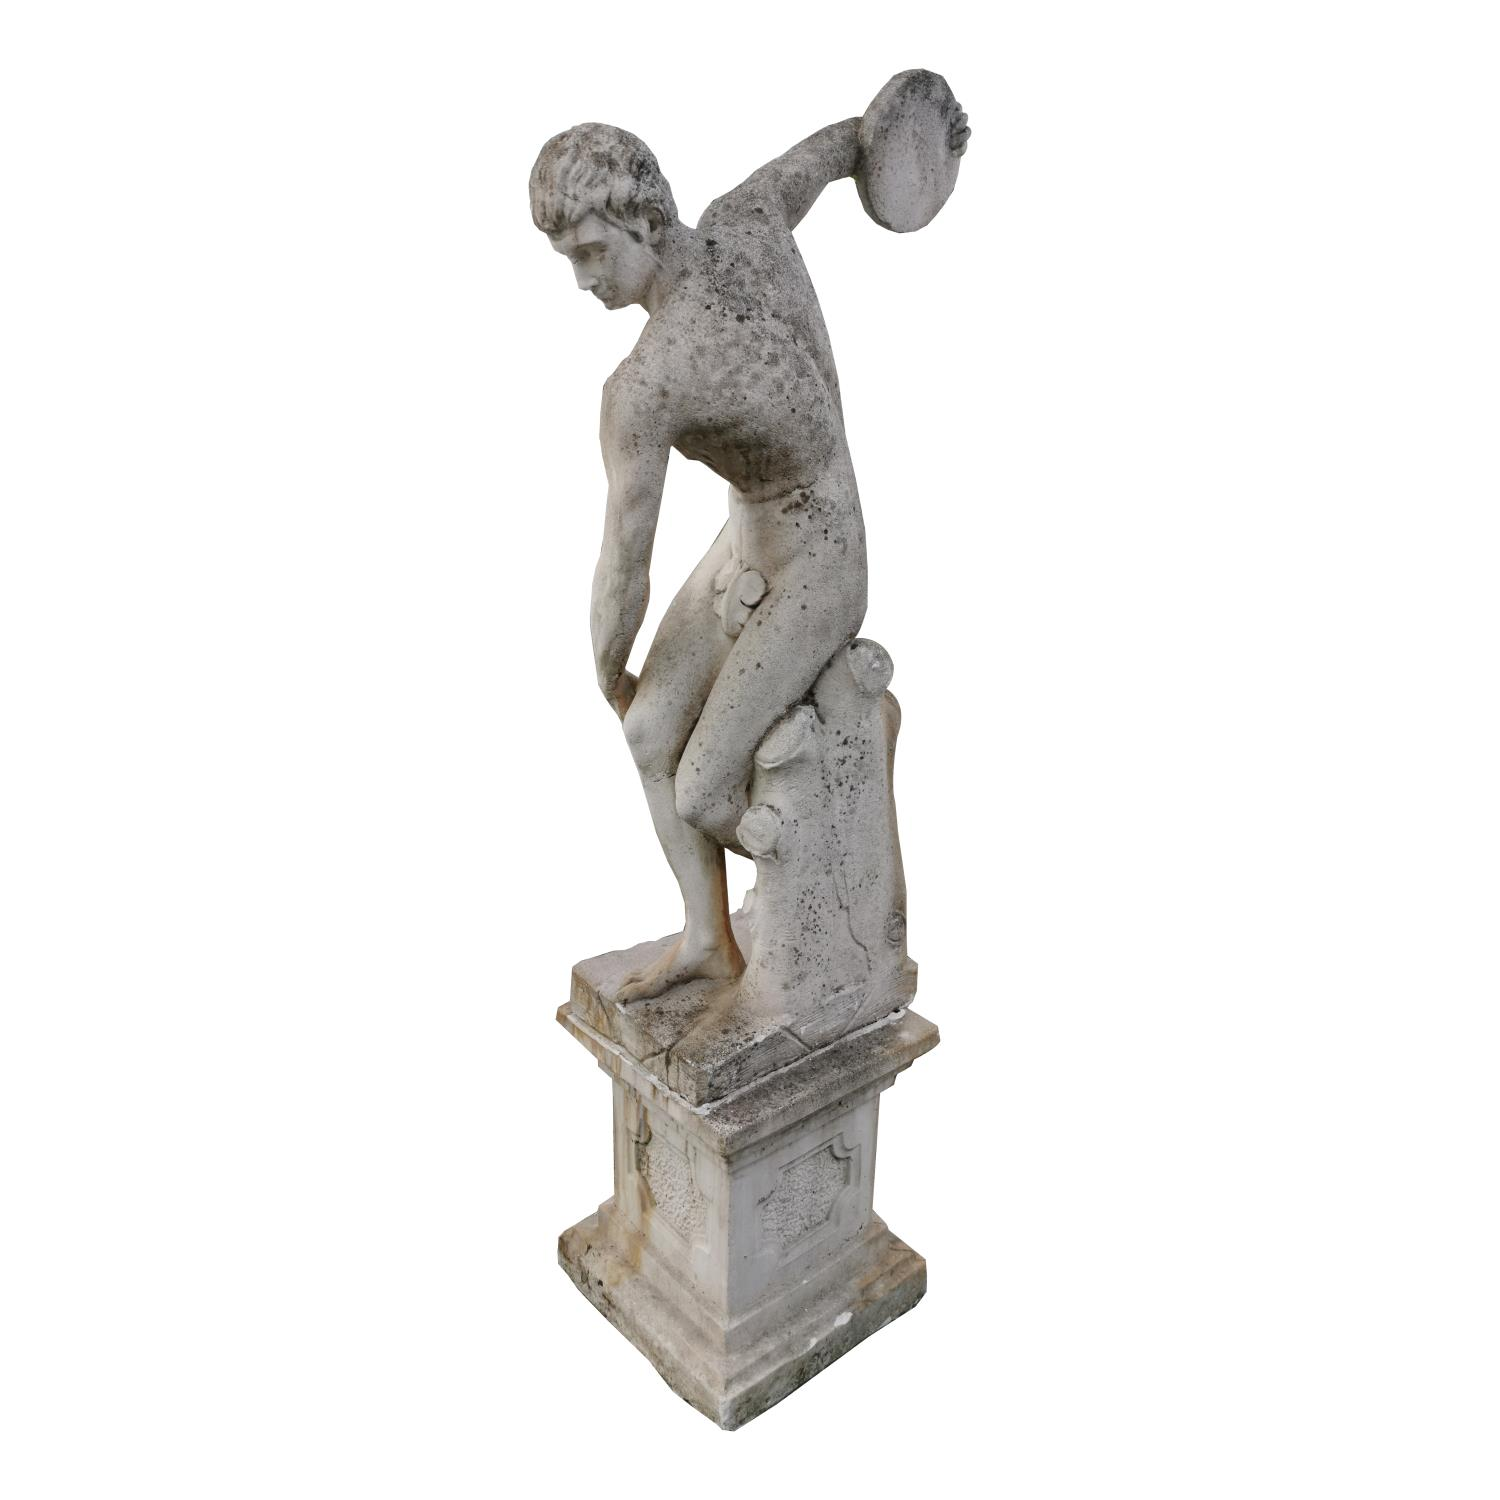 Moulded stone statue of Greek Disc Thrower - Image 4 of 5